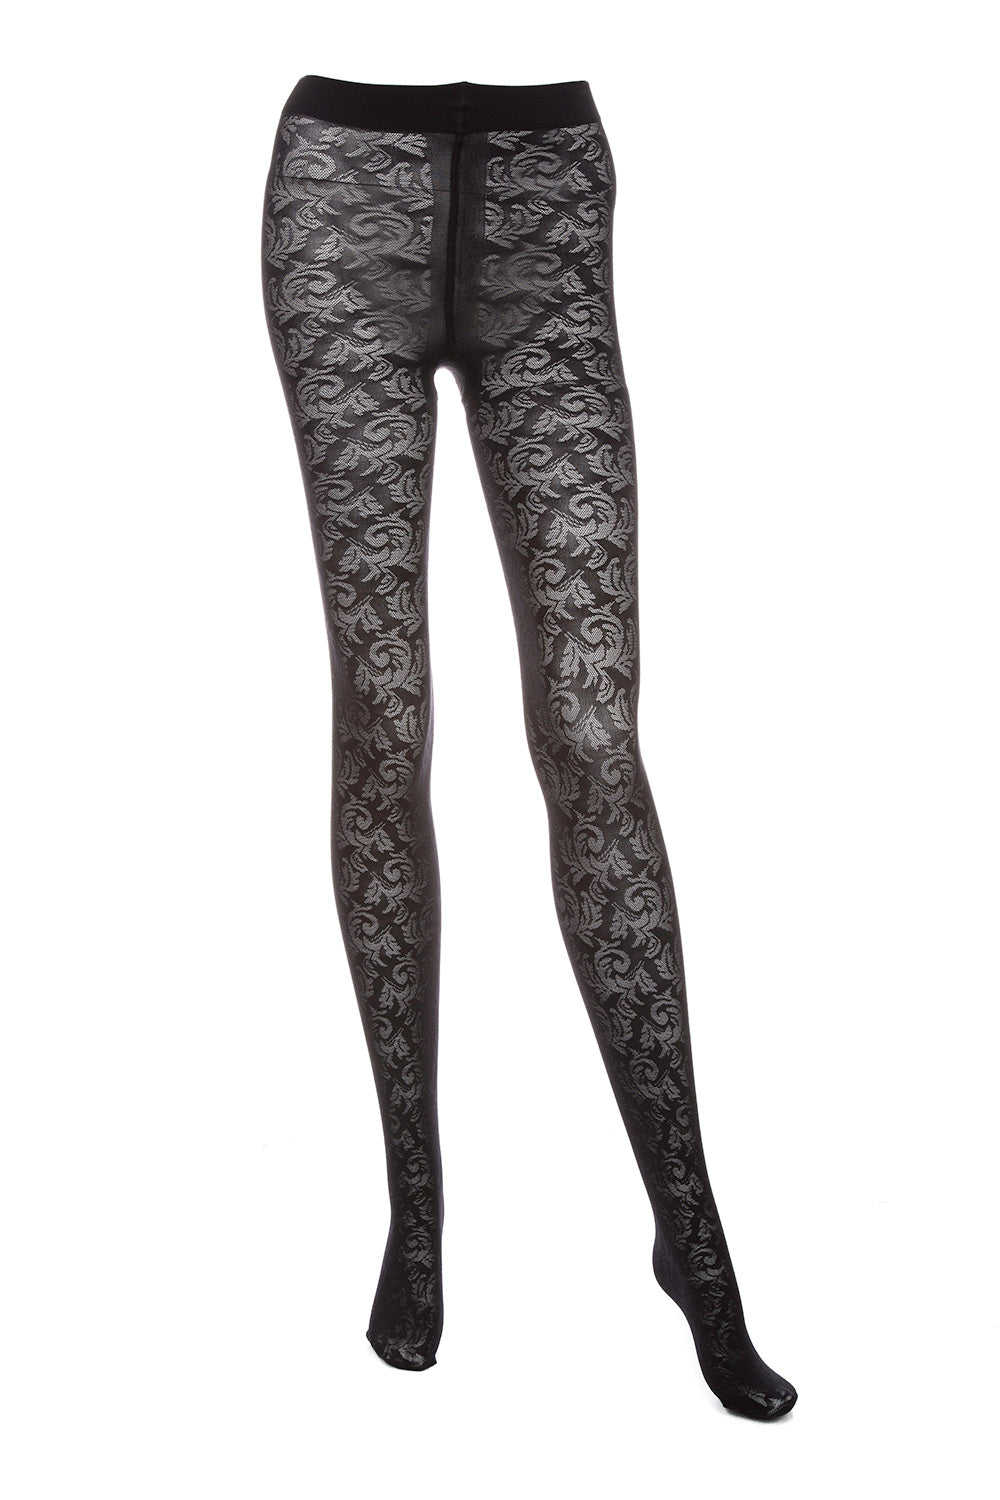 Type 4 Black Rose Tights